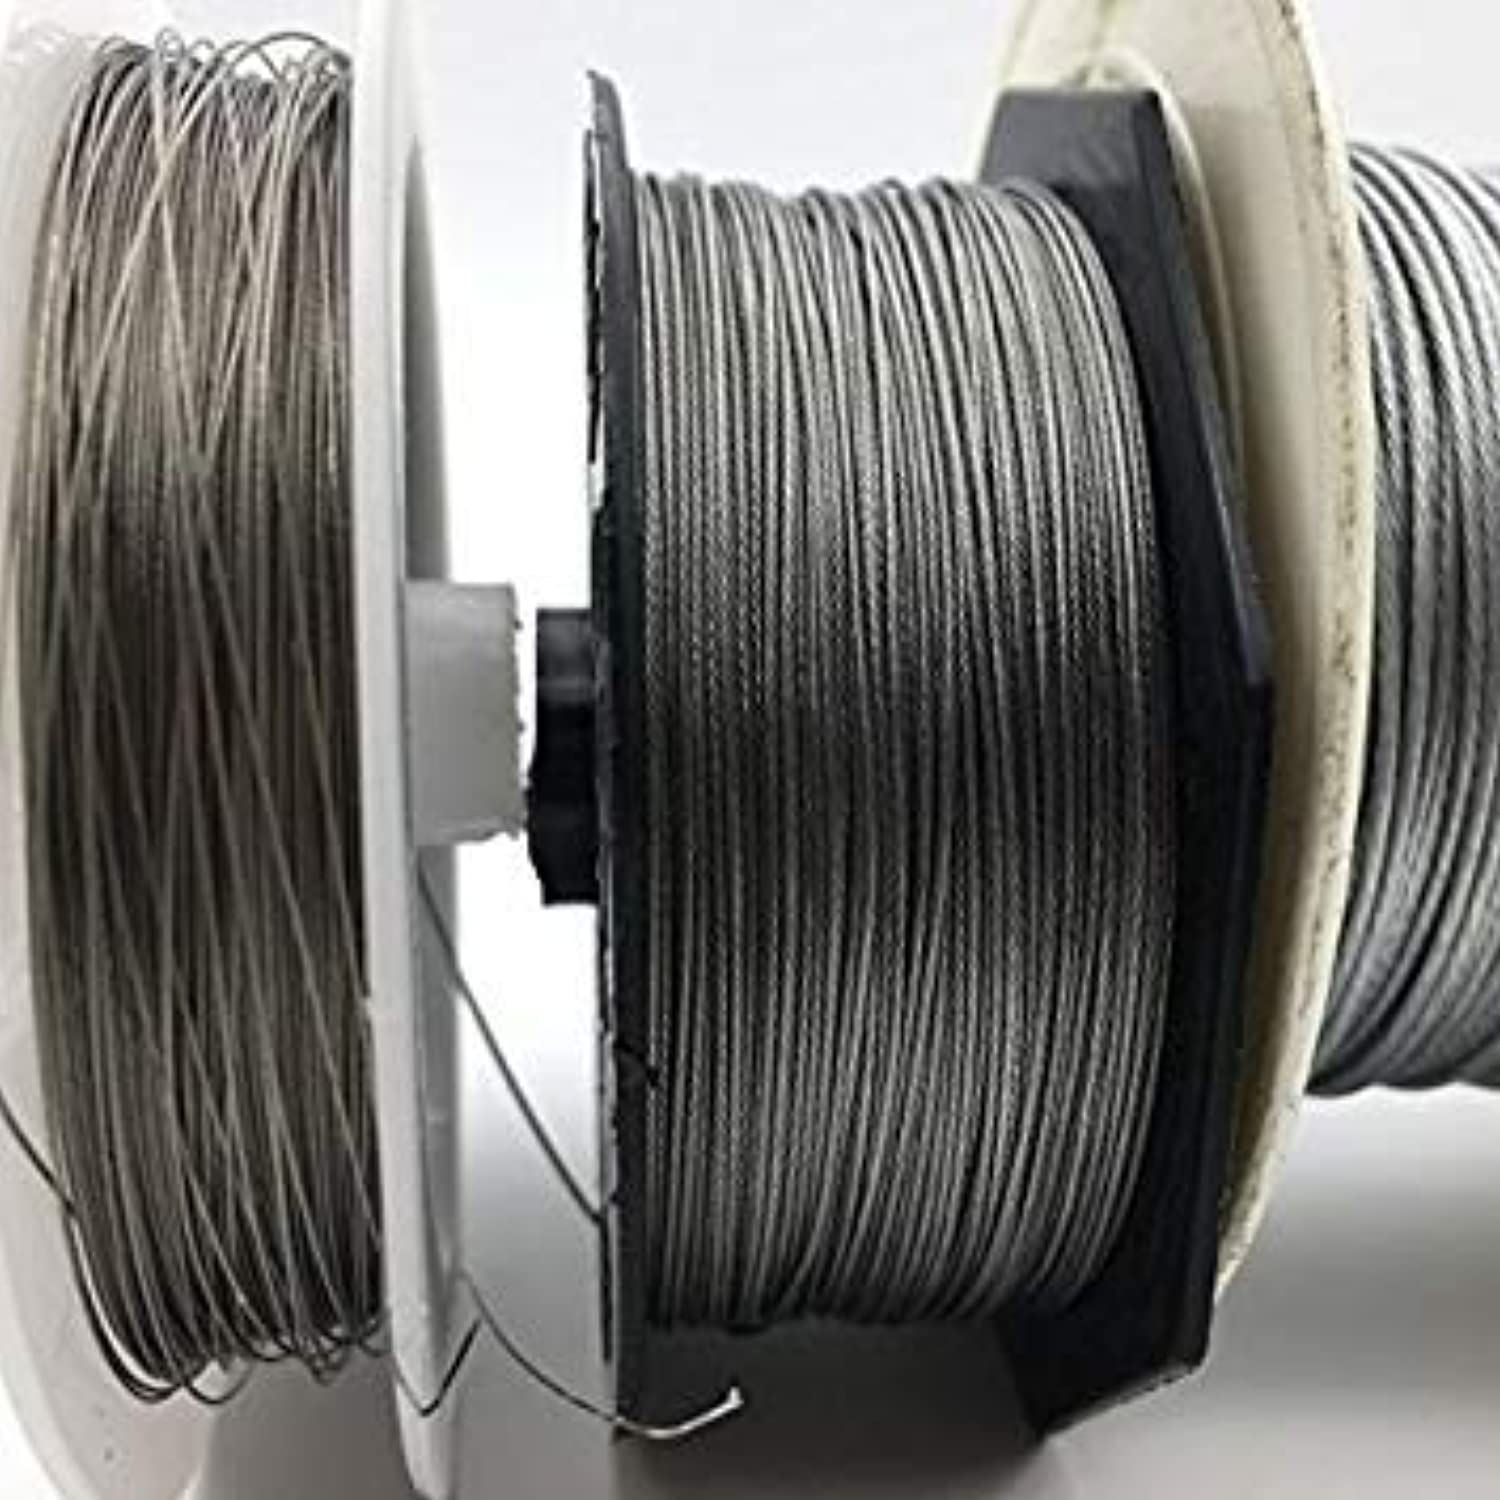 1i00mm   50M Fishing Steel Wire Fishing Lines max Power 7 Strands Super Soft Wire Lines Cover with Plastic Waterproof